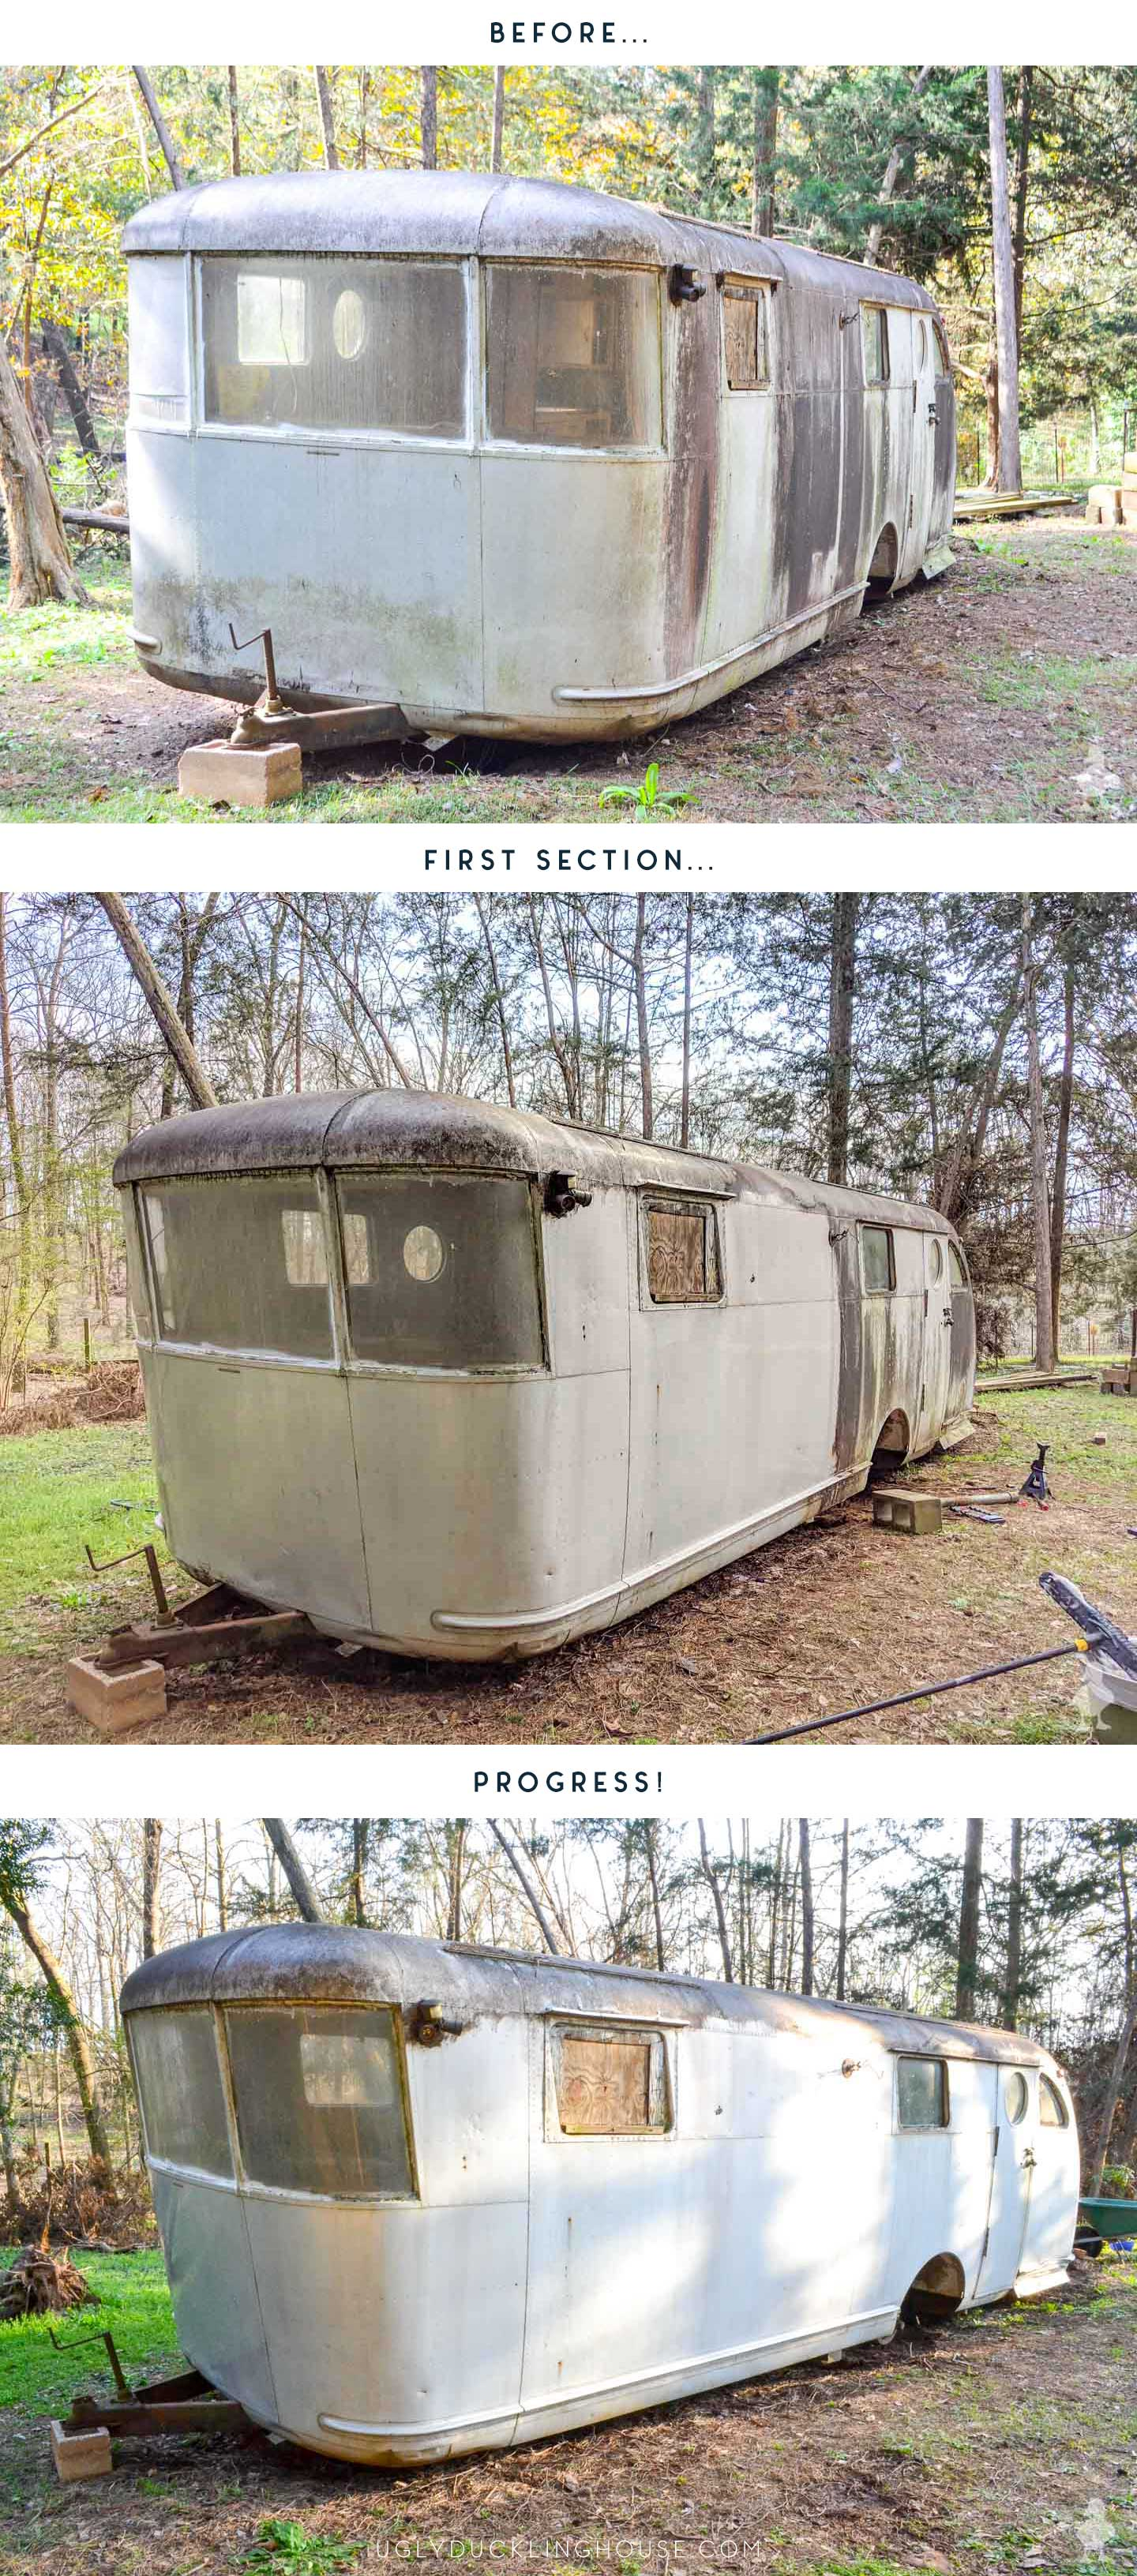 before and after of the first section of cleaning vintage camper